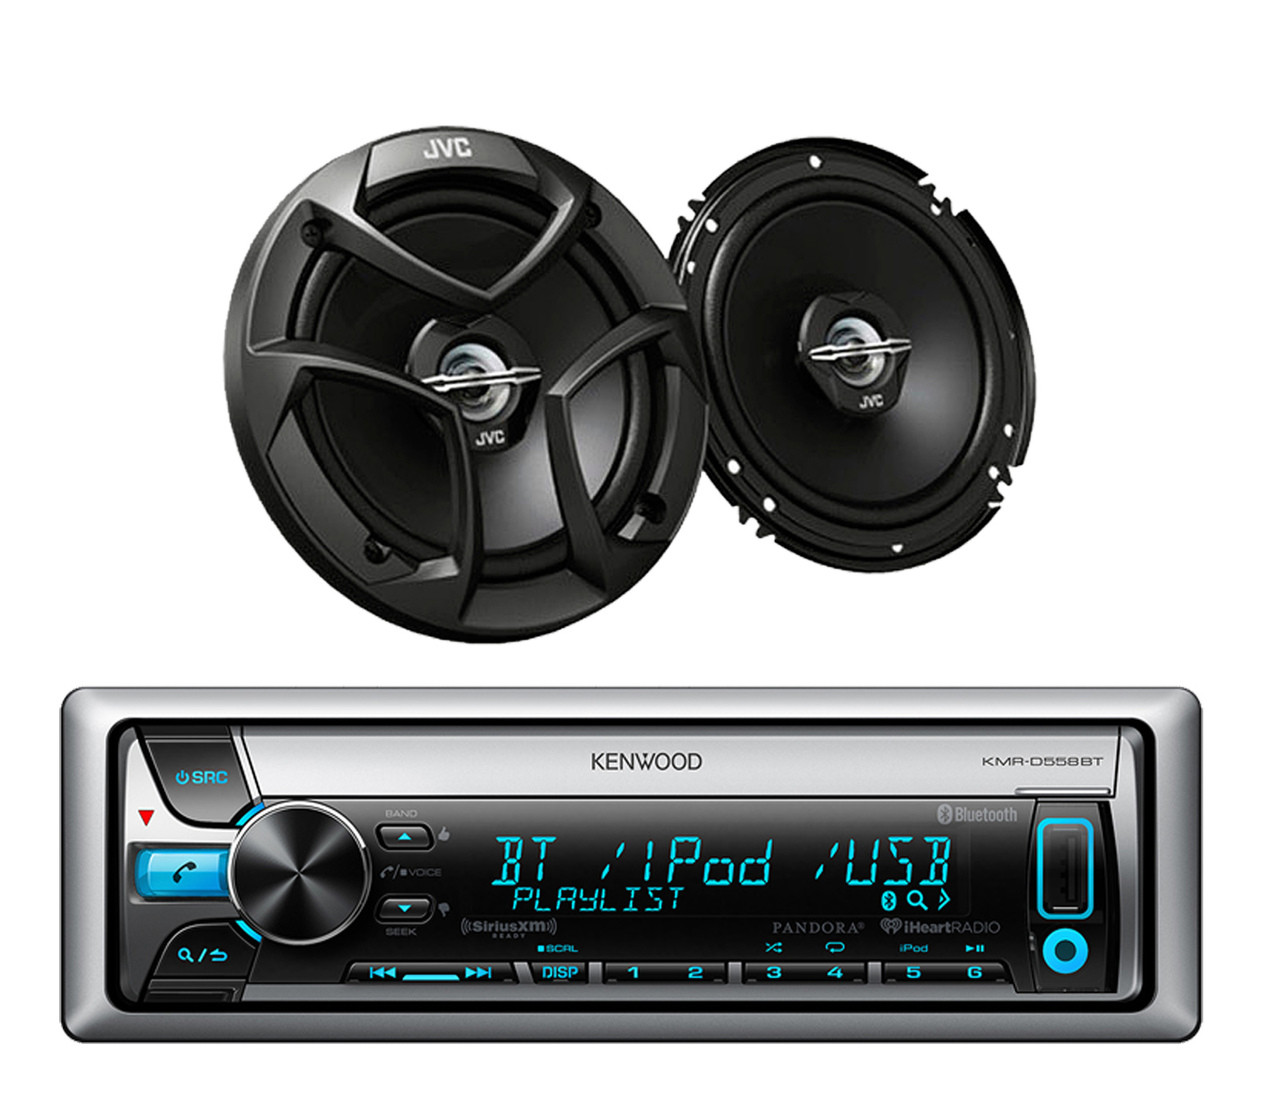 KMR-D558BT Boat Bluetooth CD/MP3 USB iPod iPhone Pandora Receiver+ Car  Speakers